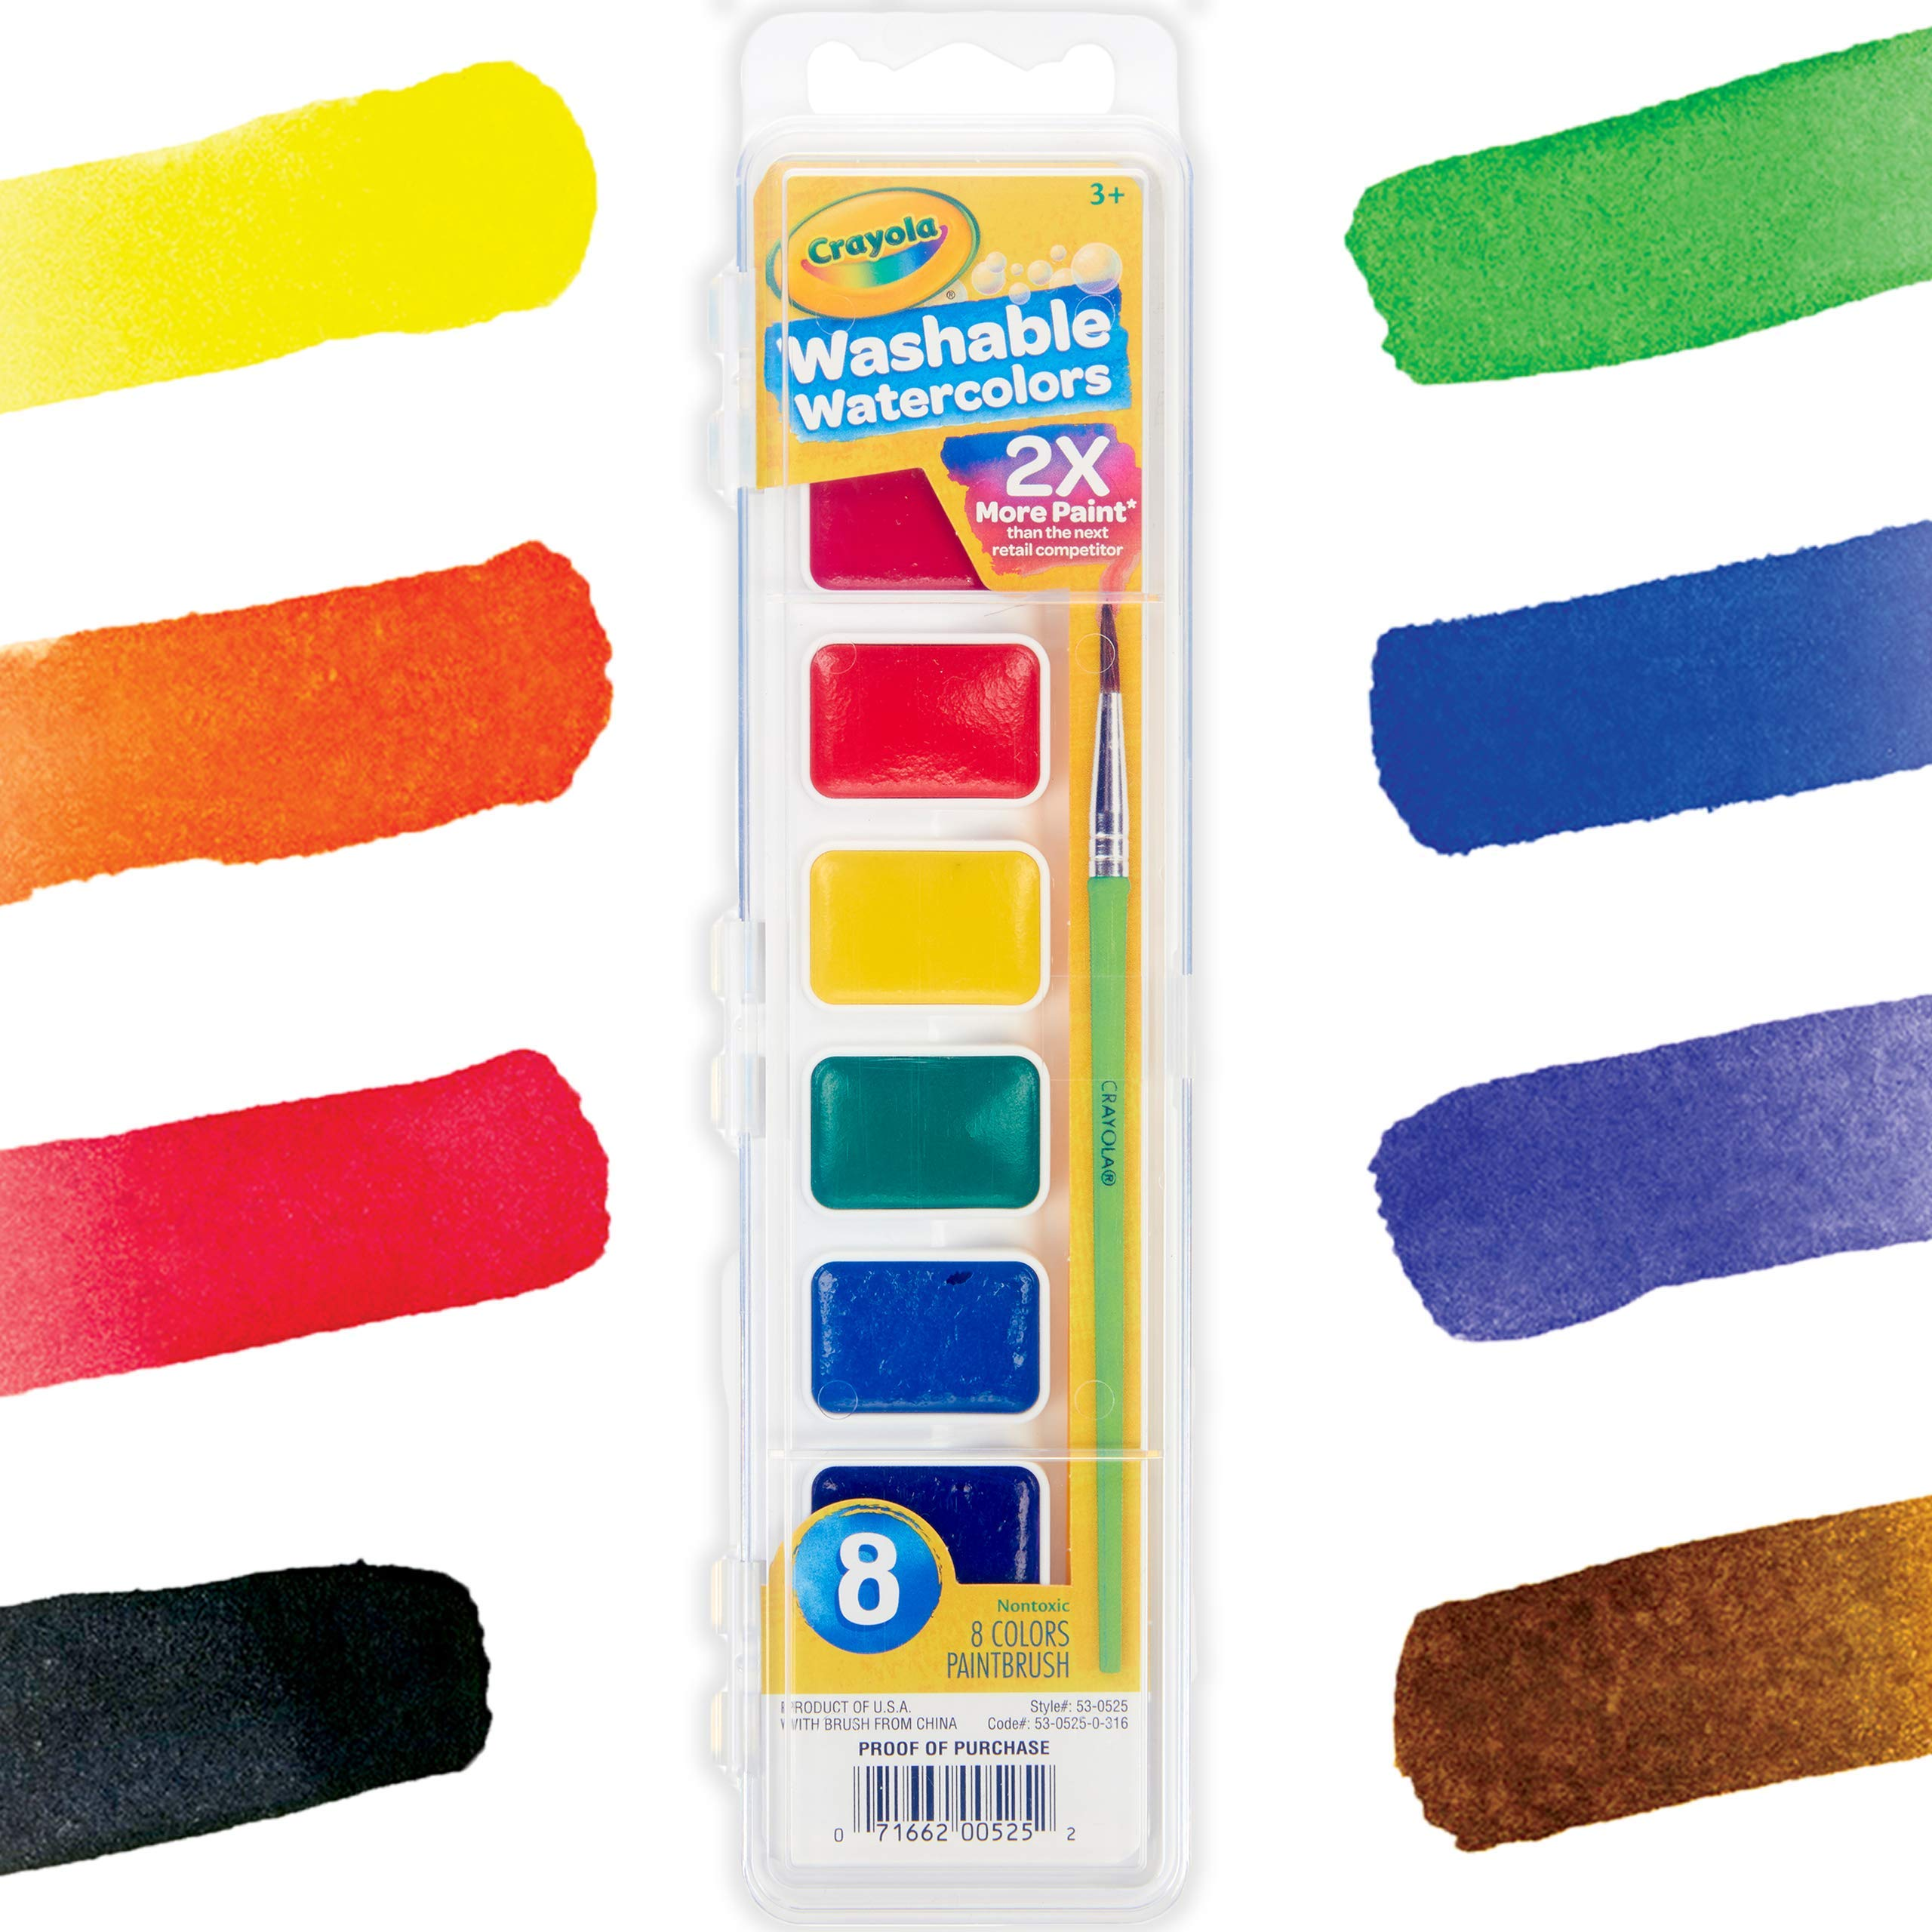 Crayola Washable Watercolors, Paint Set For Kids, 8Count, Assorted